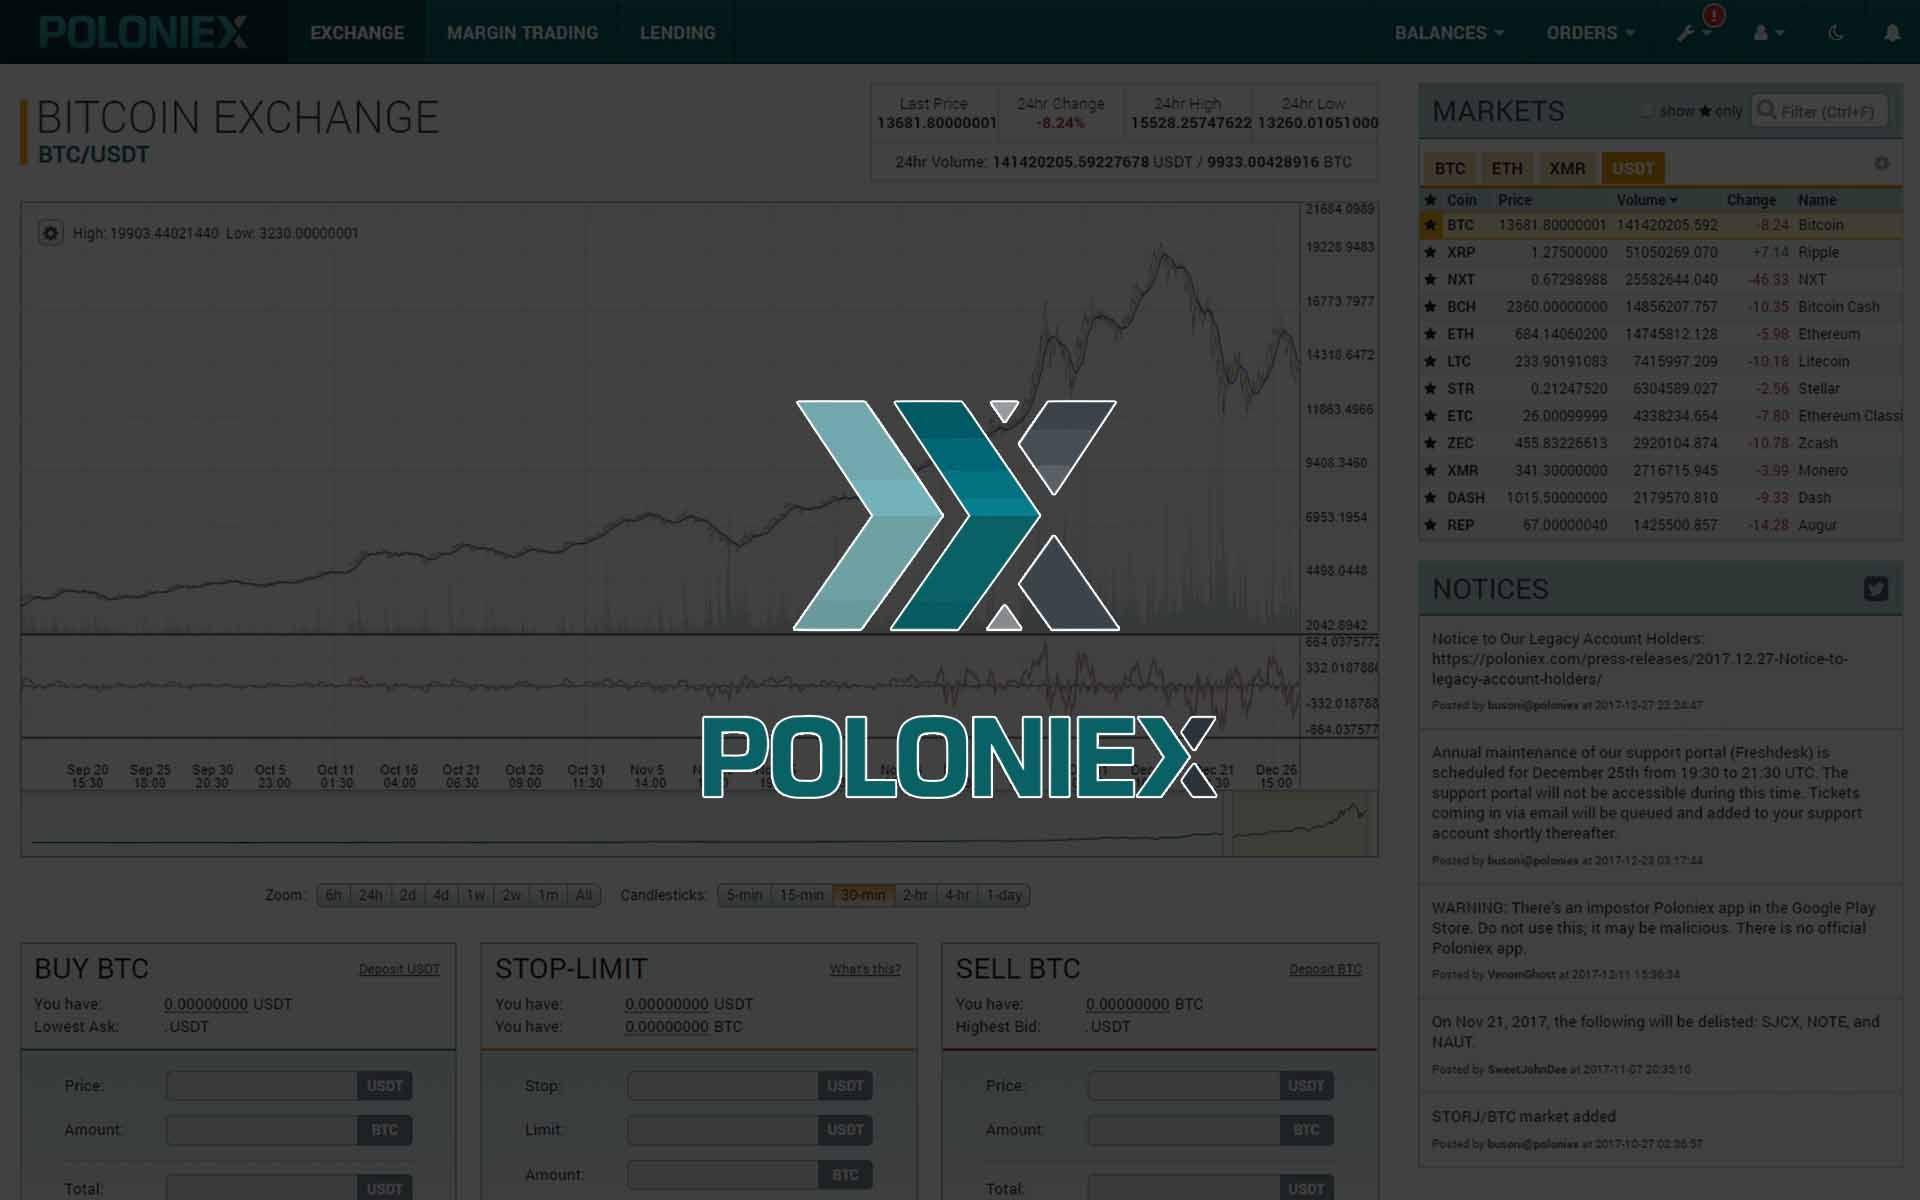 Everything You Need To Know About The New Poloniex Verification Policy